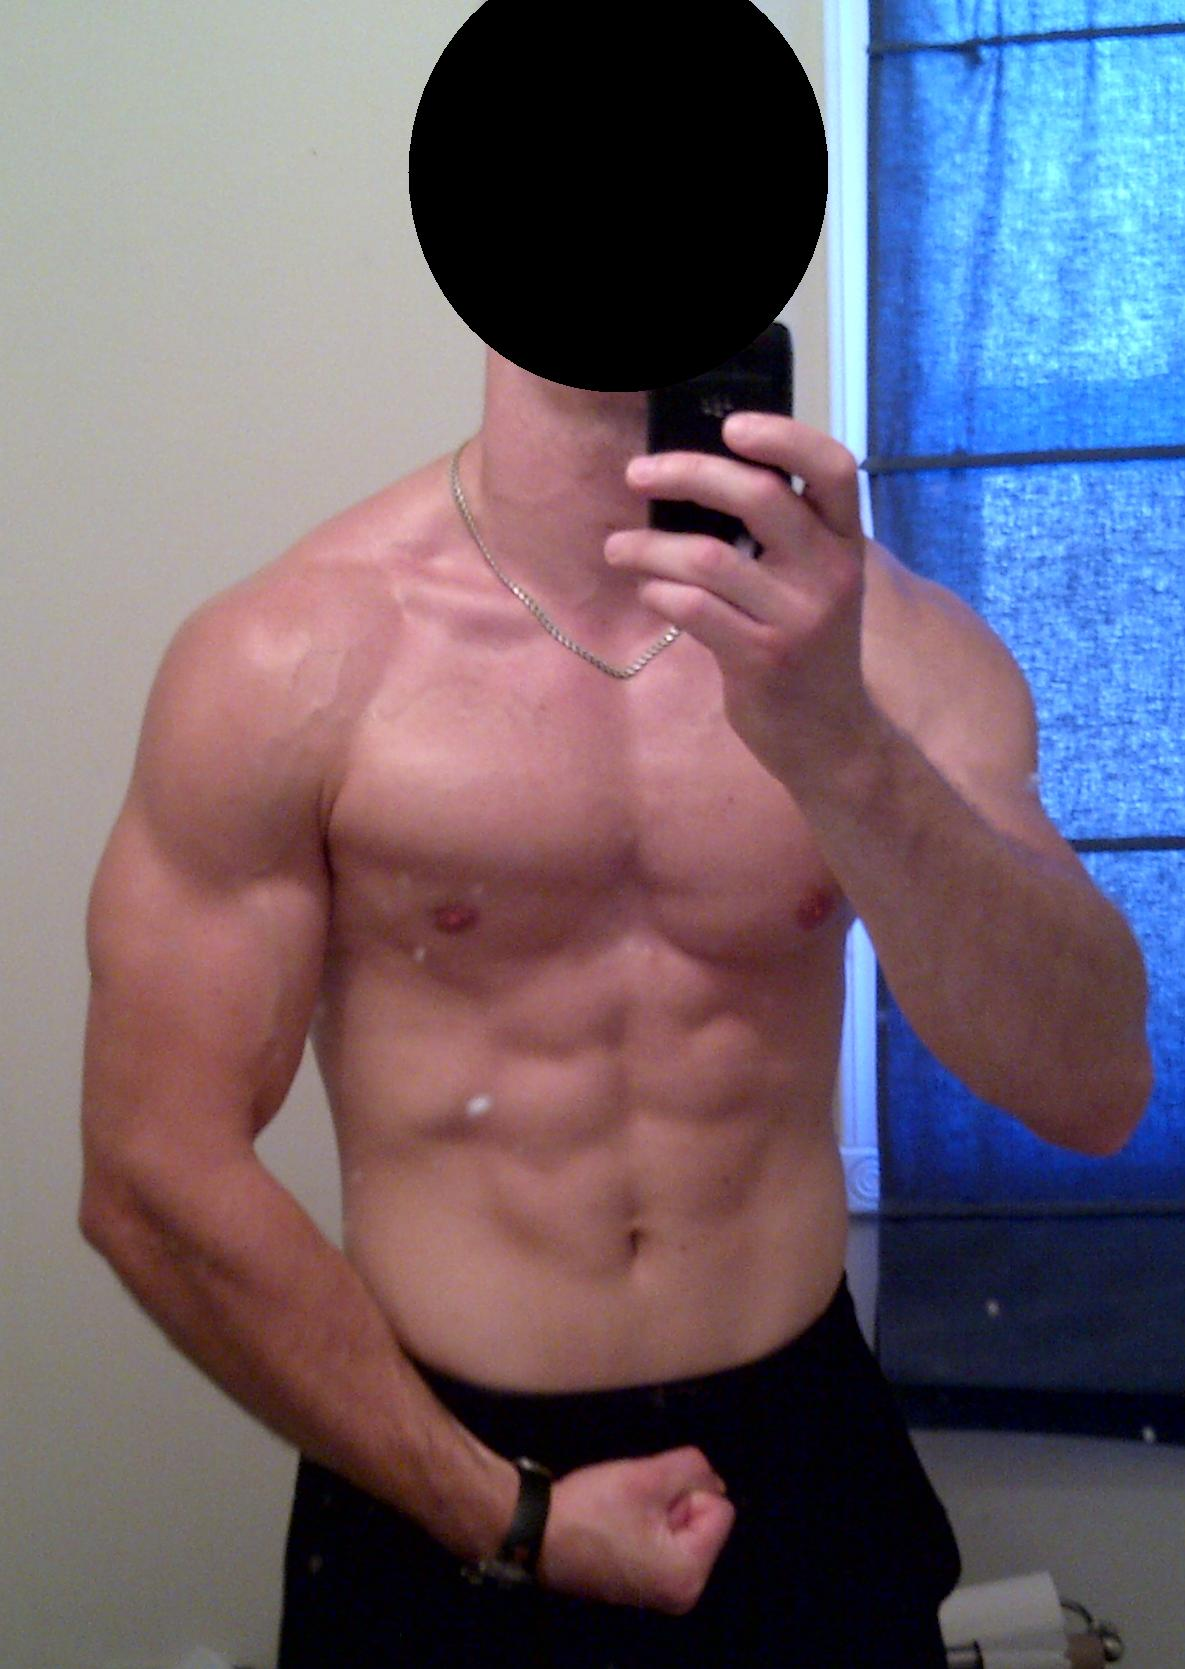 5'11 180 lbs, should I cut or continue to lean bulk (with